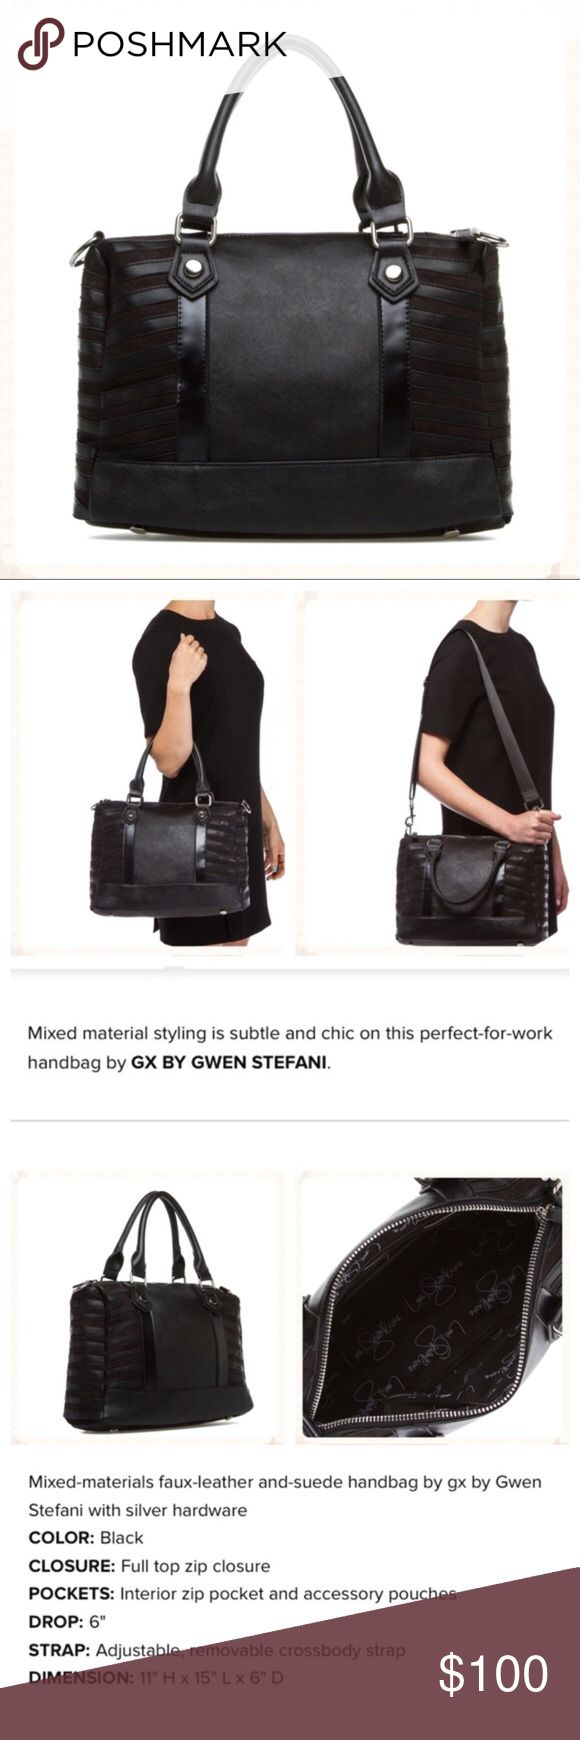 "🆕! GX by Gwen Stefani ""Hayla"" handbag in black Chic perfect for work handbag. See third picture for details and measurements. Bag is in original factory packaging.  NO TRADES! GX by Gwen Stefani Bags"